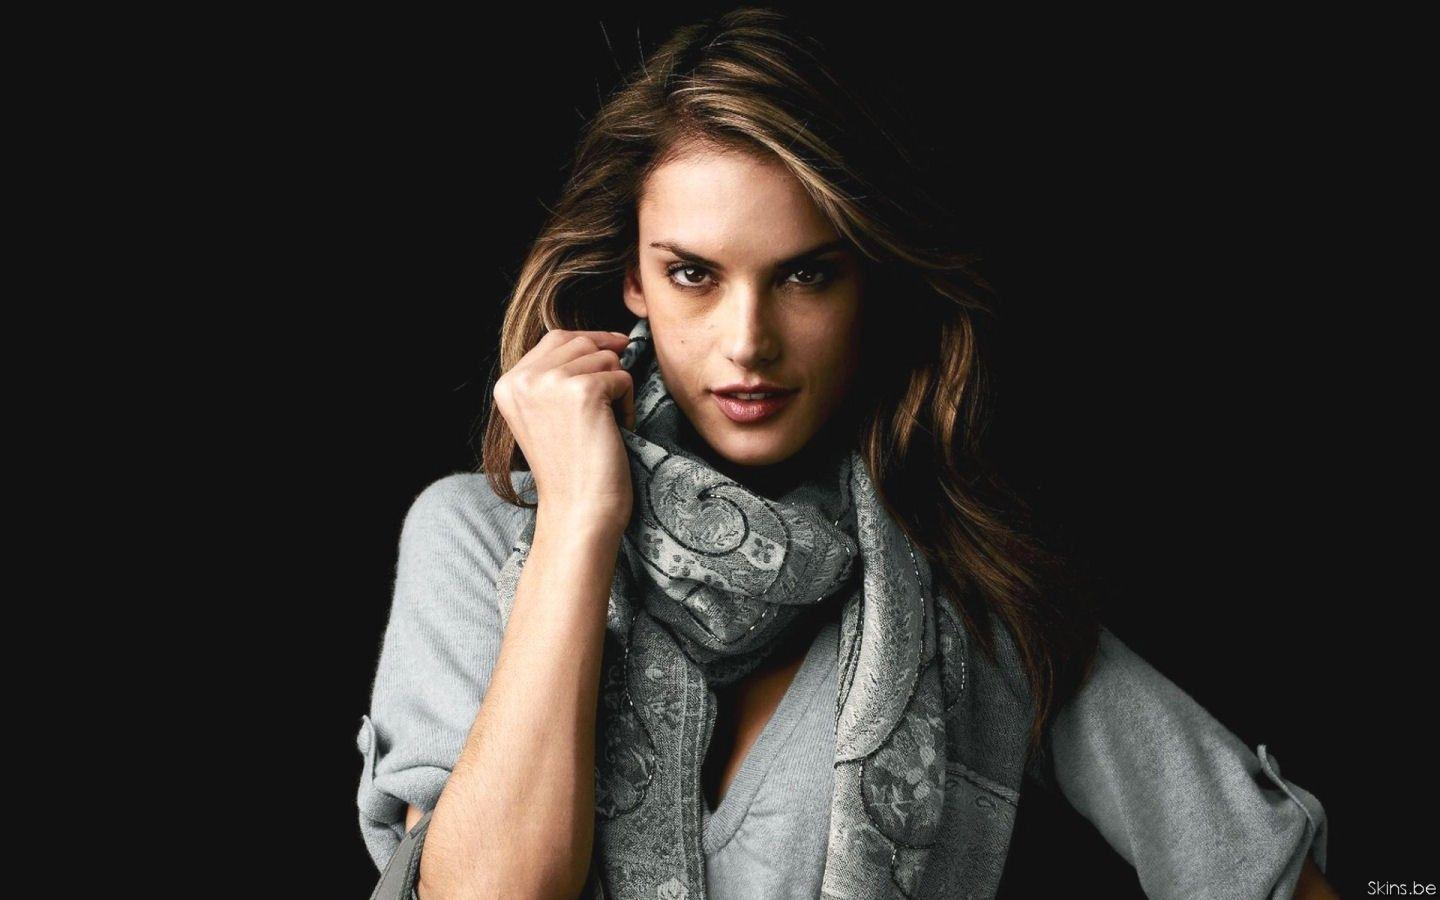 The Images Of Alessandra Ambrosio 1440x900 HD Wallpaper